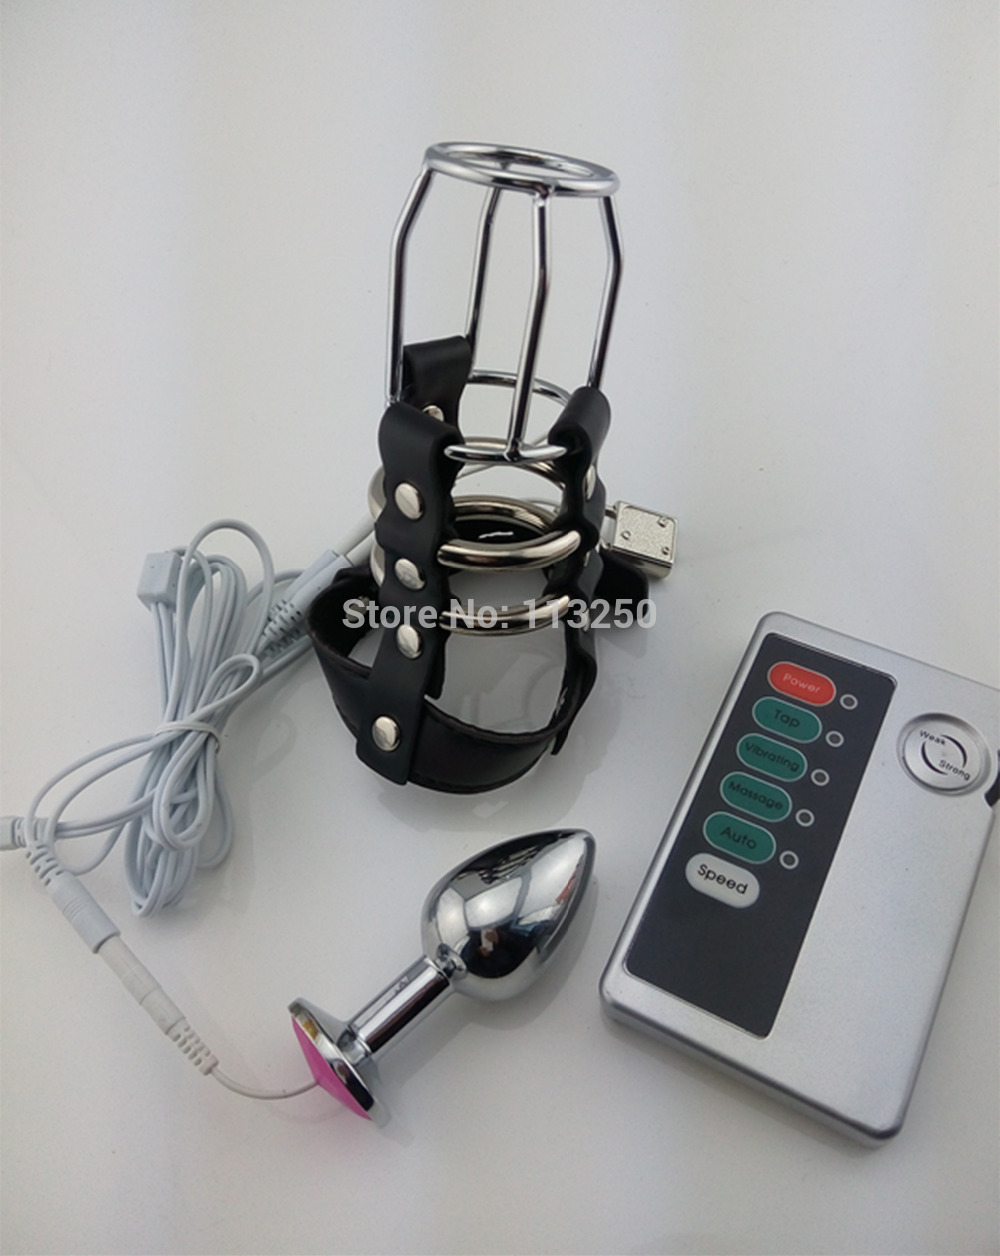 CB6000S electric shock leather chastity cage device electro shock  metal anal plug butt plug male sex toys CB6000 AC122 2 type metal anal plug for choose steel butt plug electric shock leather chastity cage device electro shock sex toys